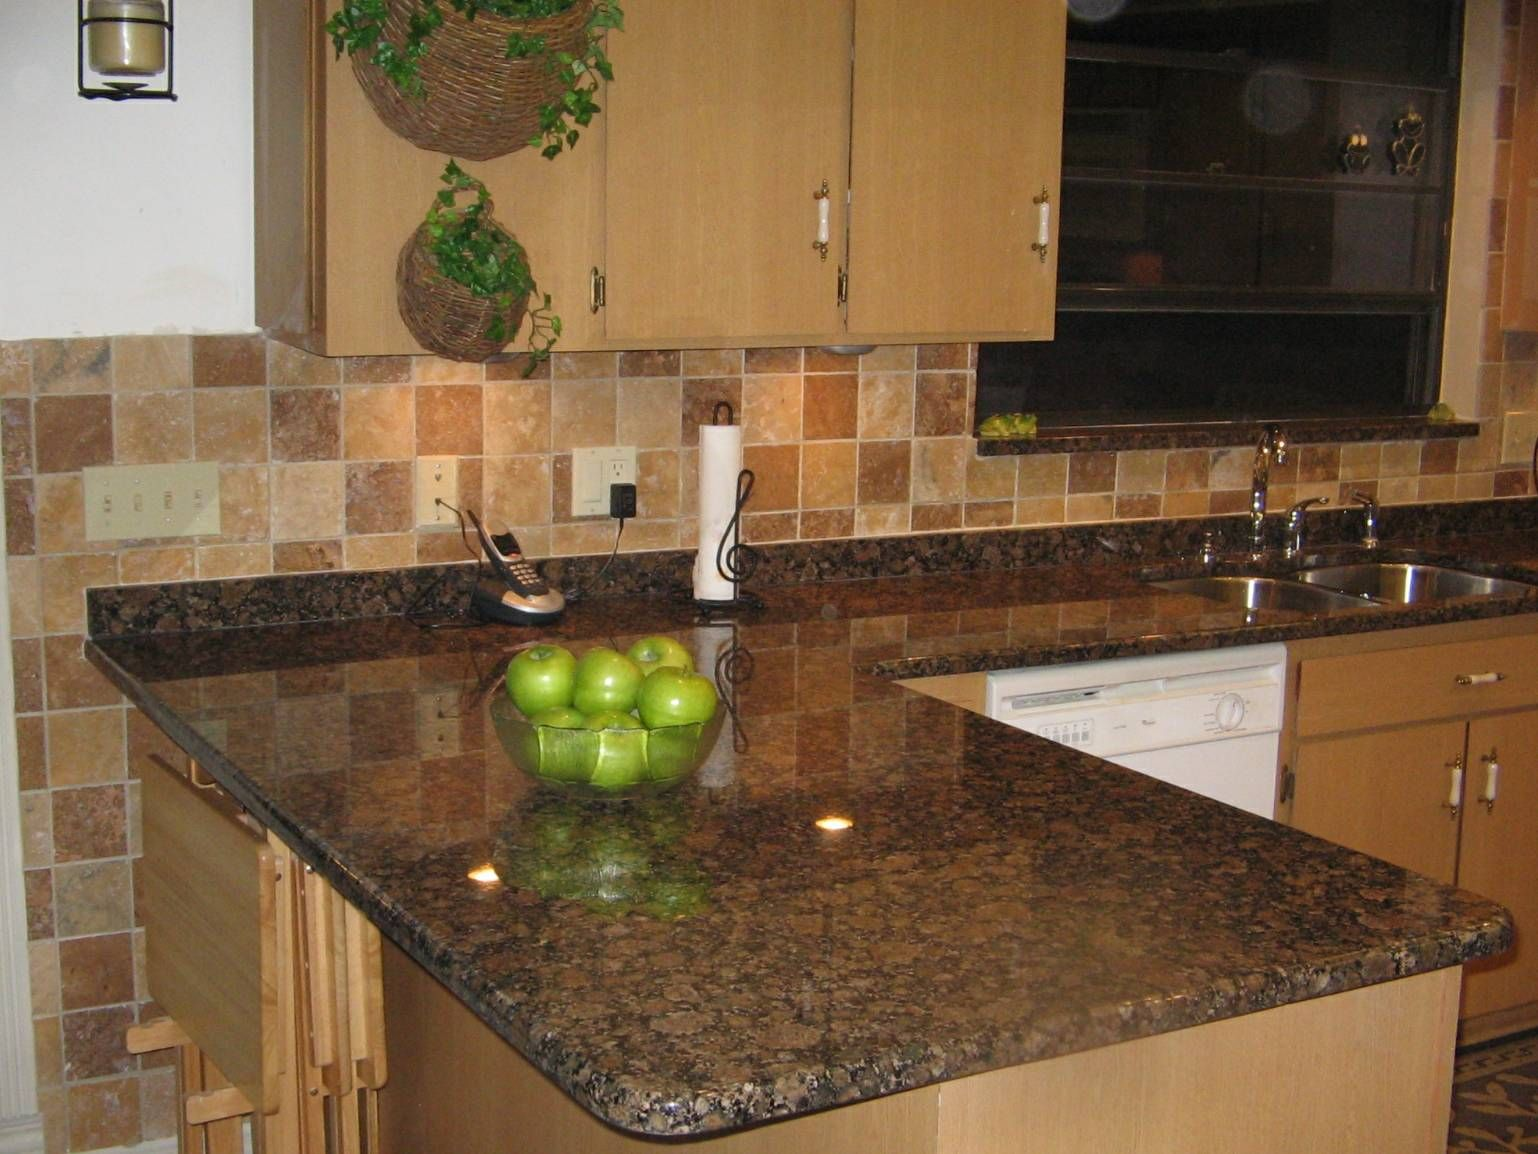 Kitchen Beautiful L Shape Kitchen Decoration Using Square Travertine Tile Kitchen Backsplash Including Black Granite Counter Tops And Light Oak Wood